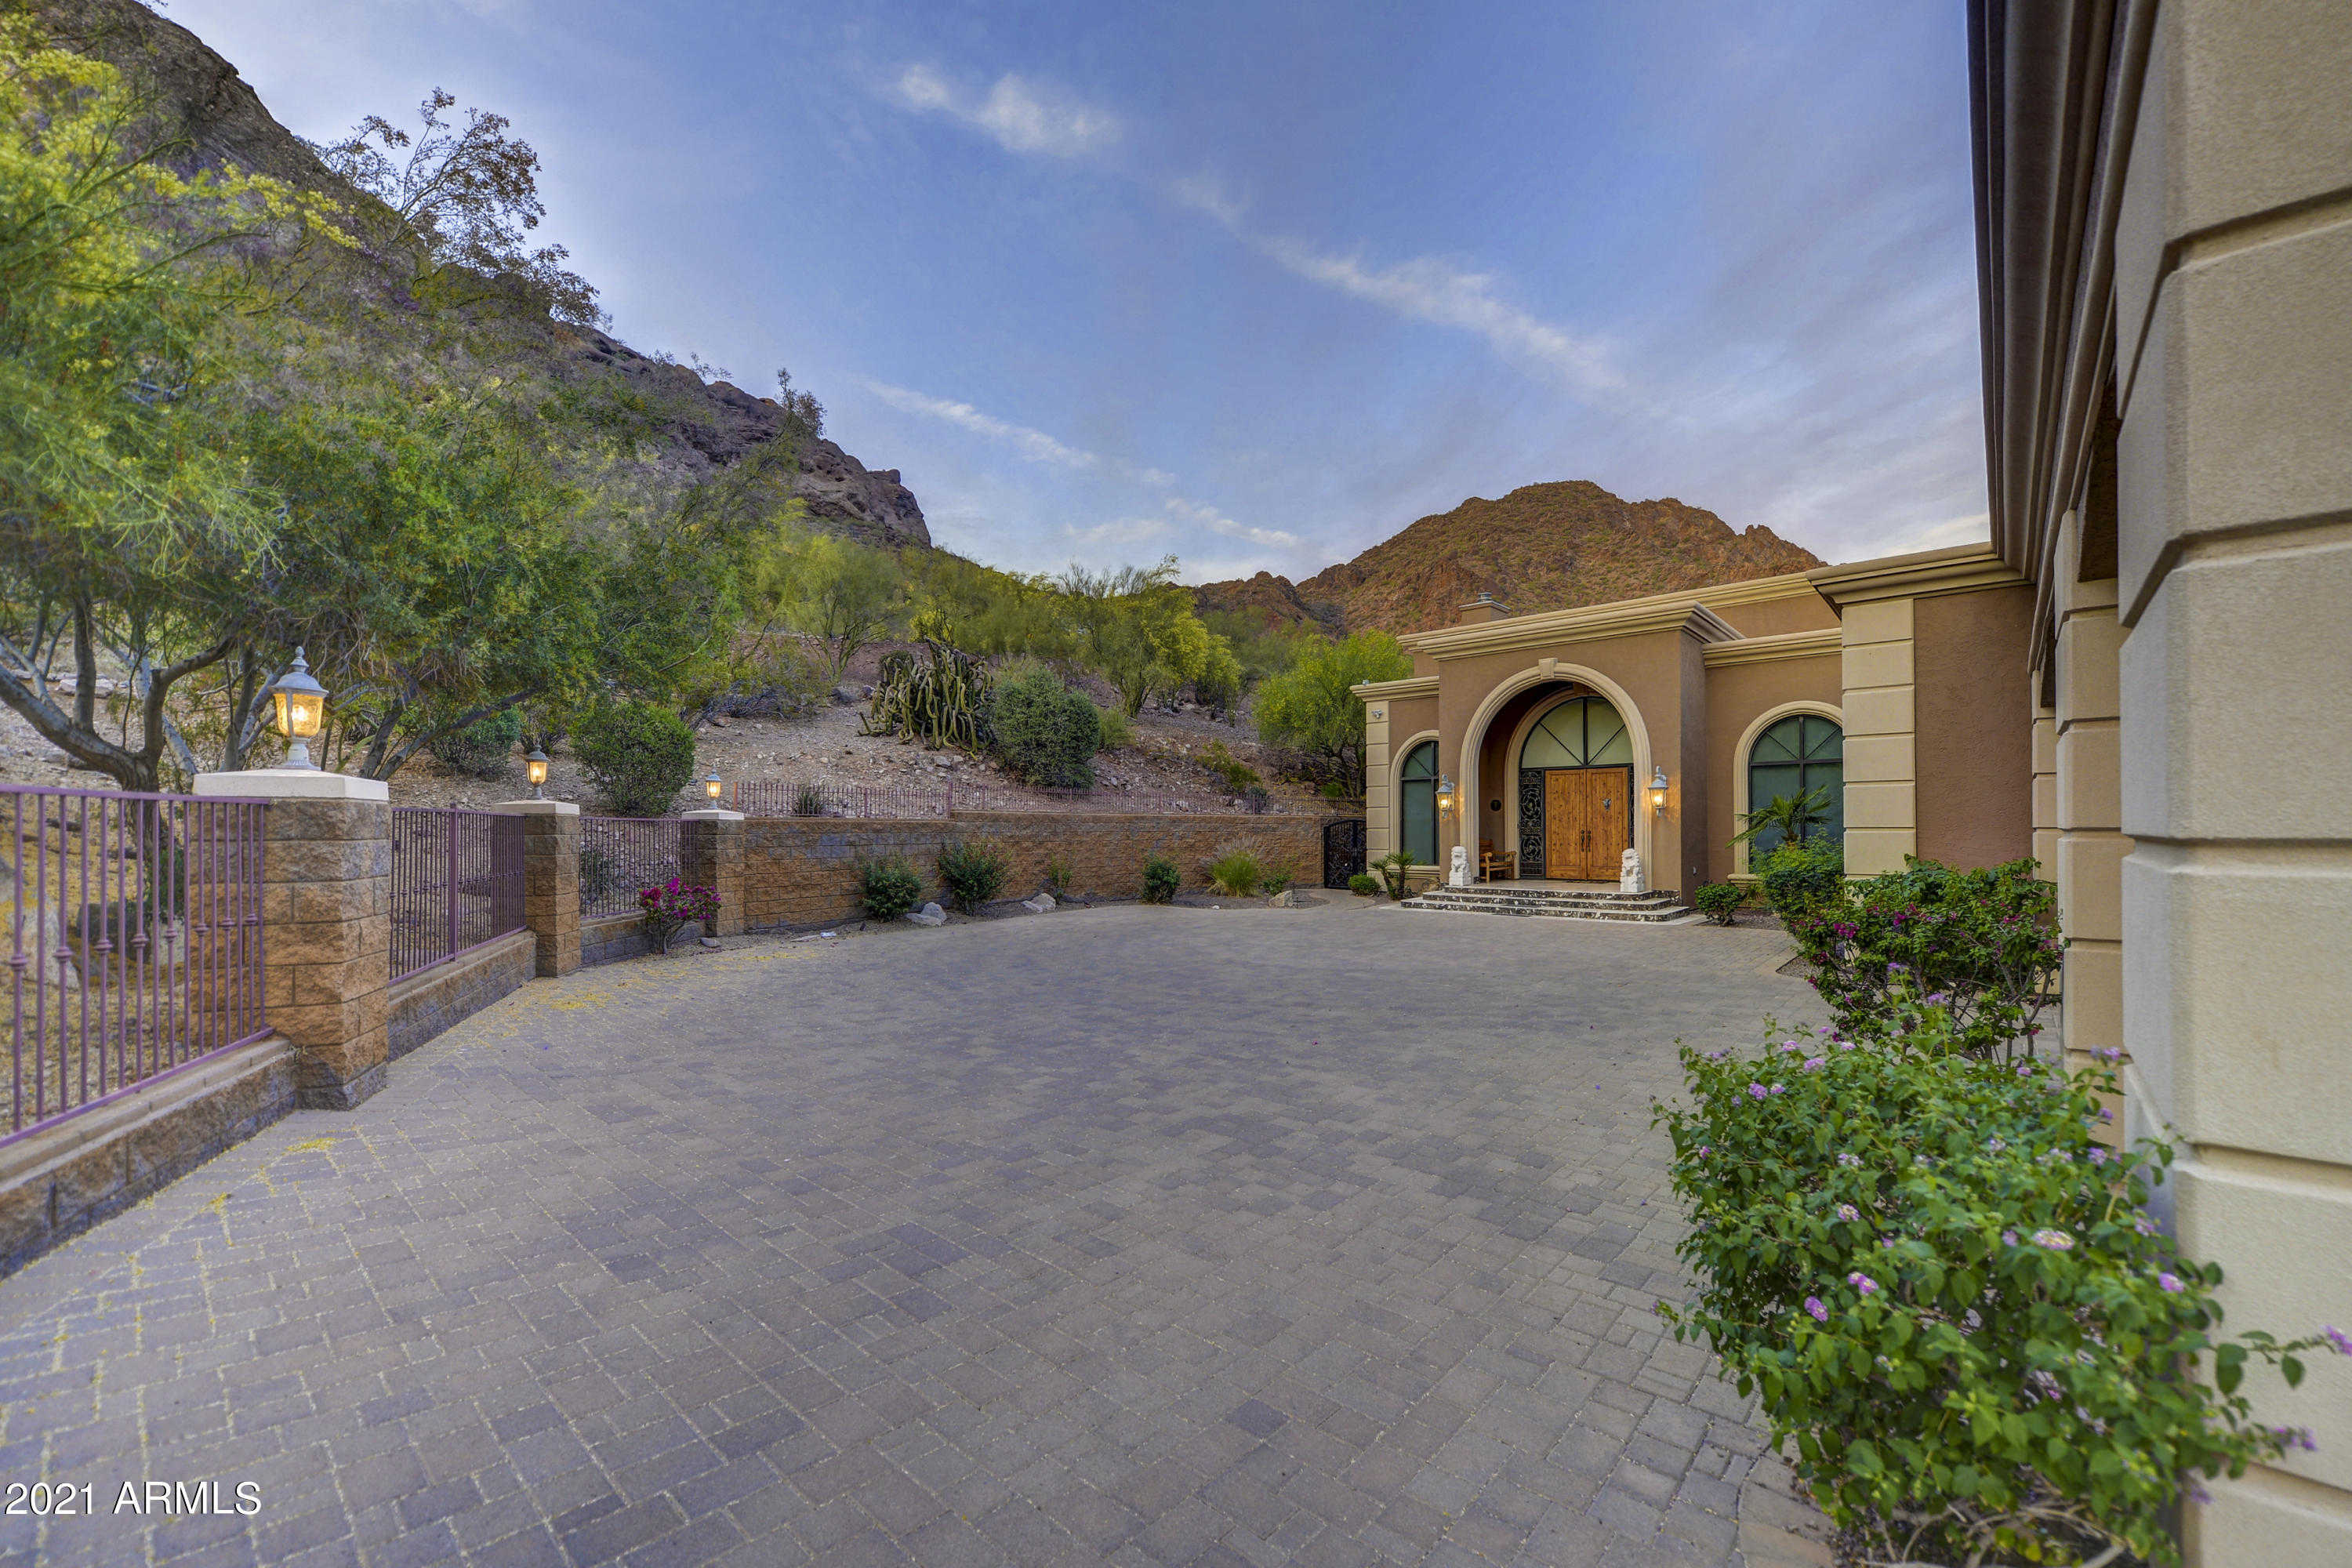 $3,500,000 - 3Br/4Ba - Home for Sale in Red Rock, Phoenix